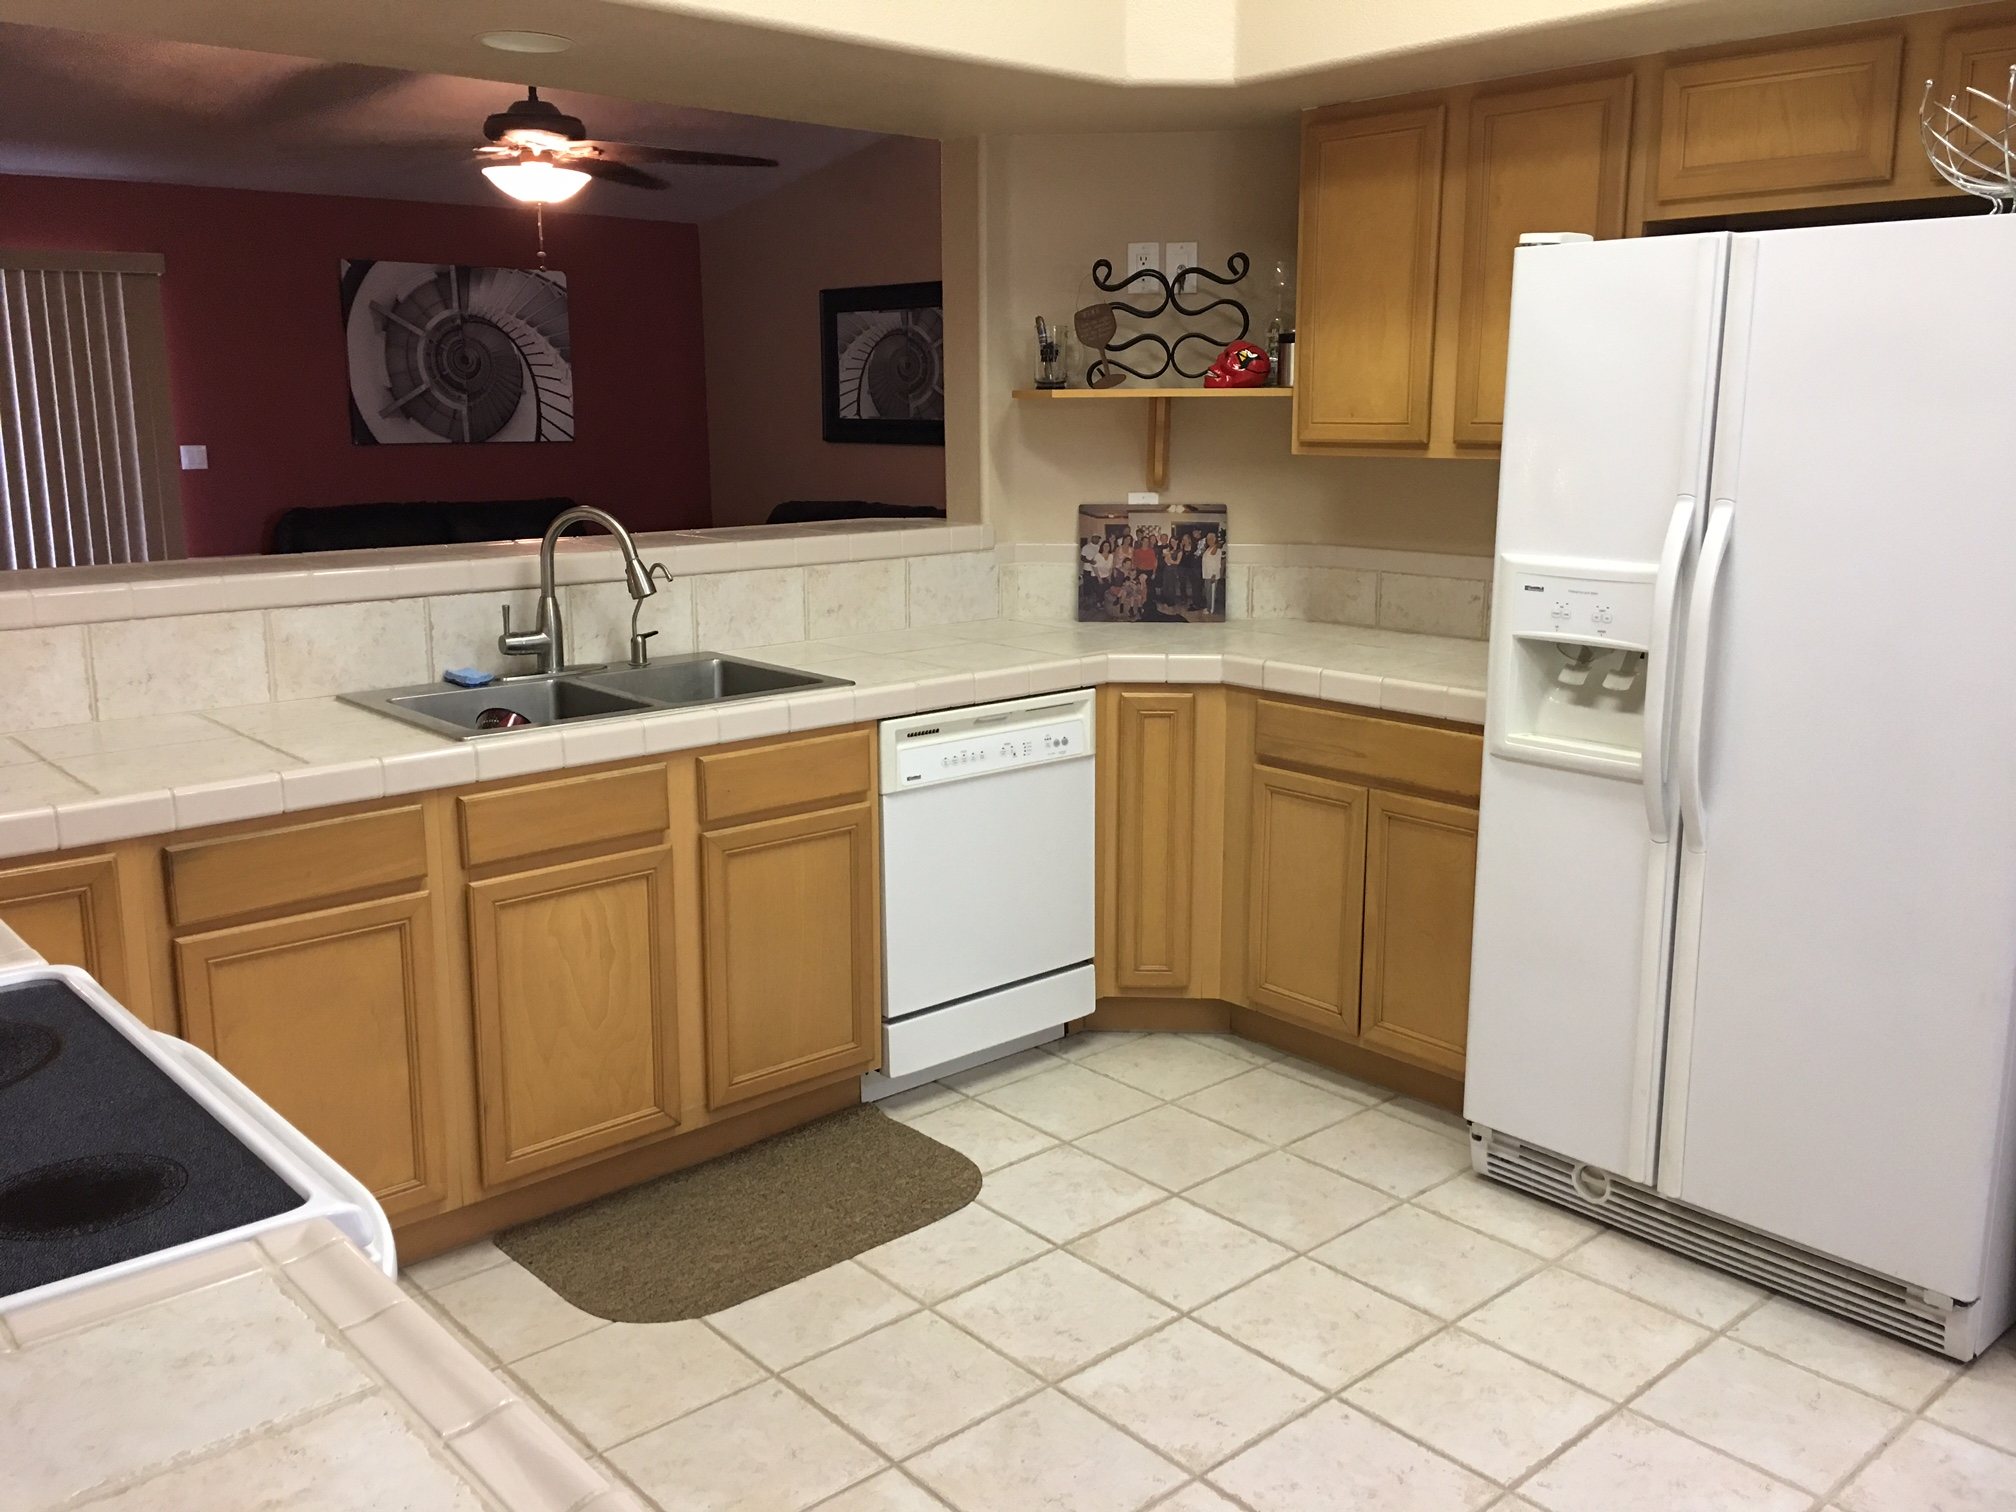 Garage Cabinets Lake Havasu Southside Lake Havasu City Home For Sale 3266 Star Dr